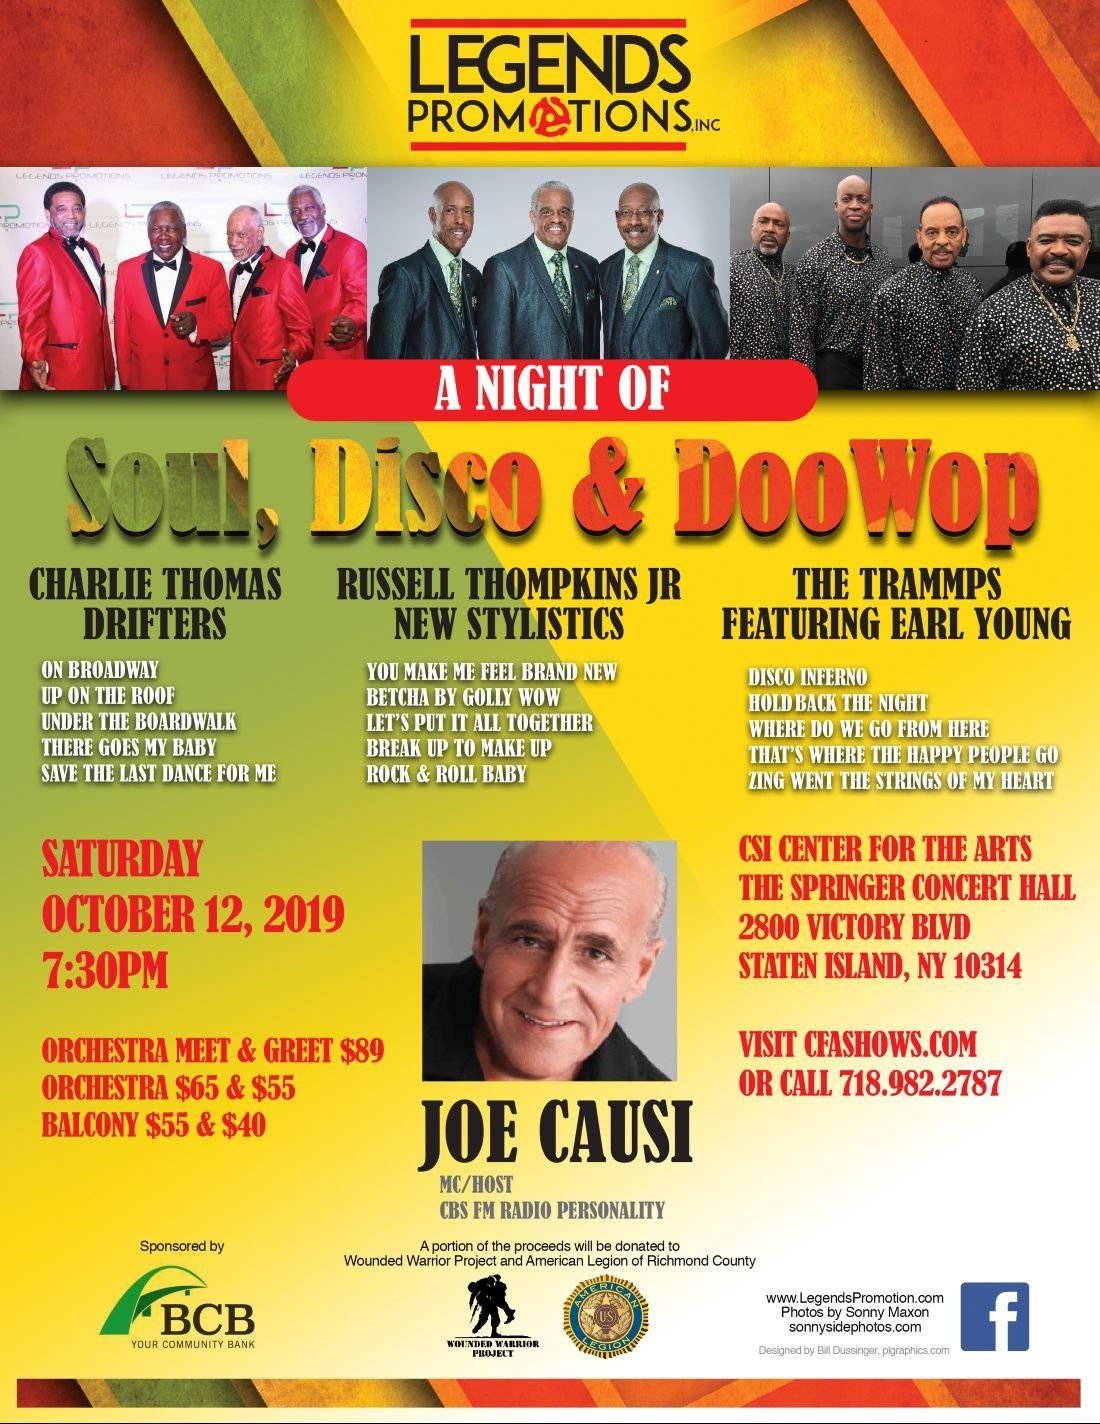 Legends Promotions Presents  A Night of Soul Disco & Doo Wop